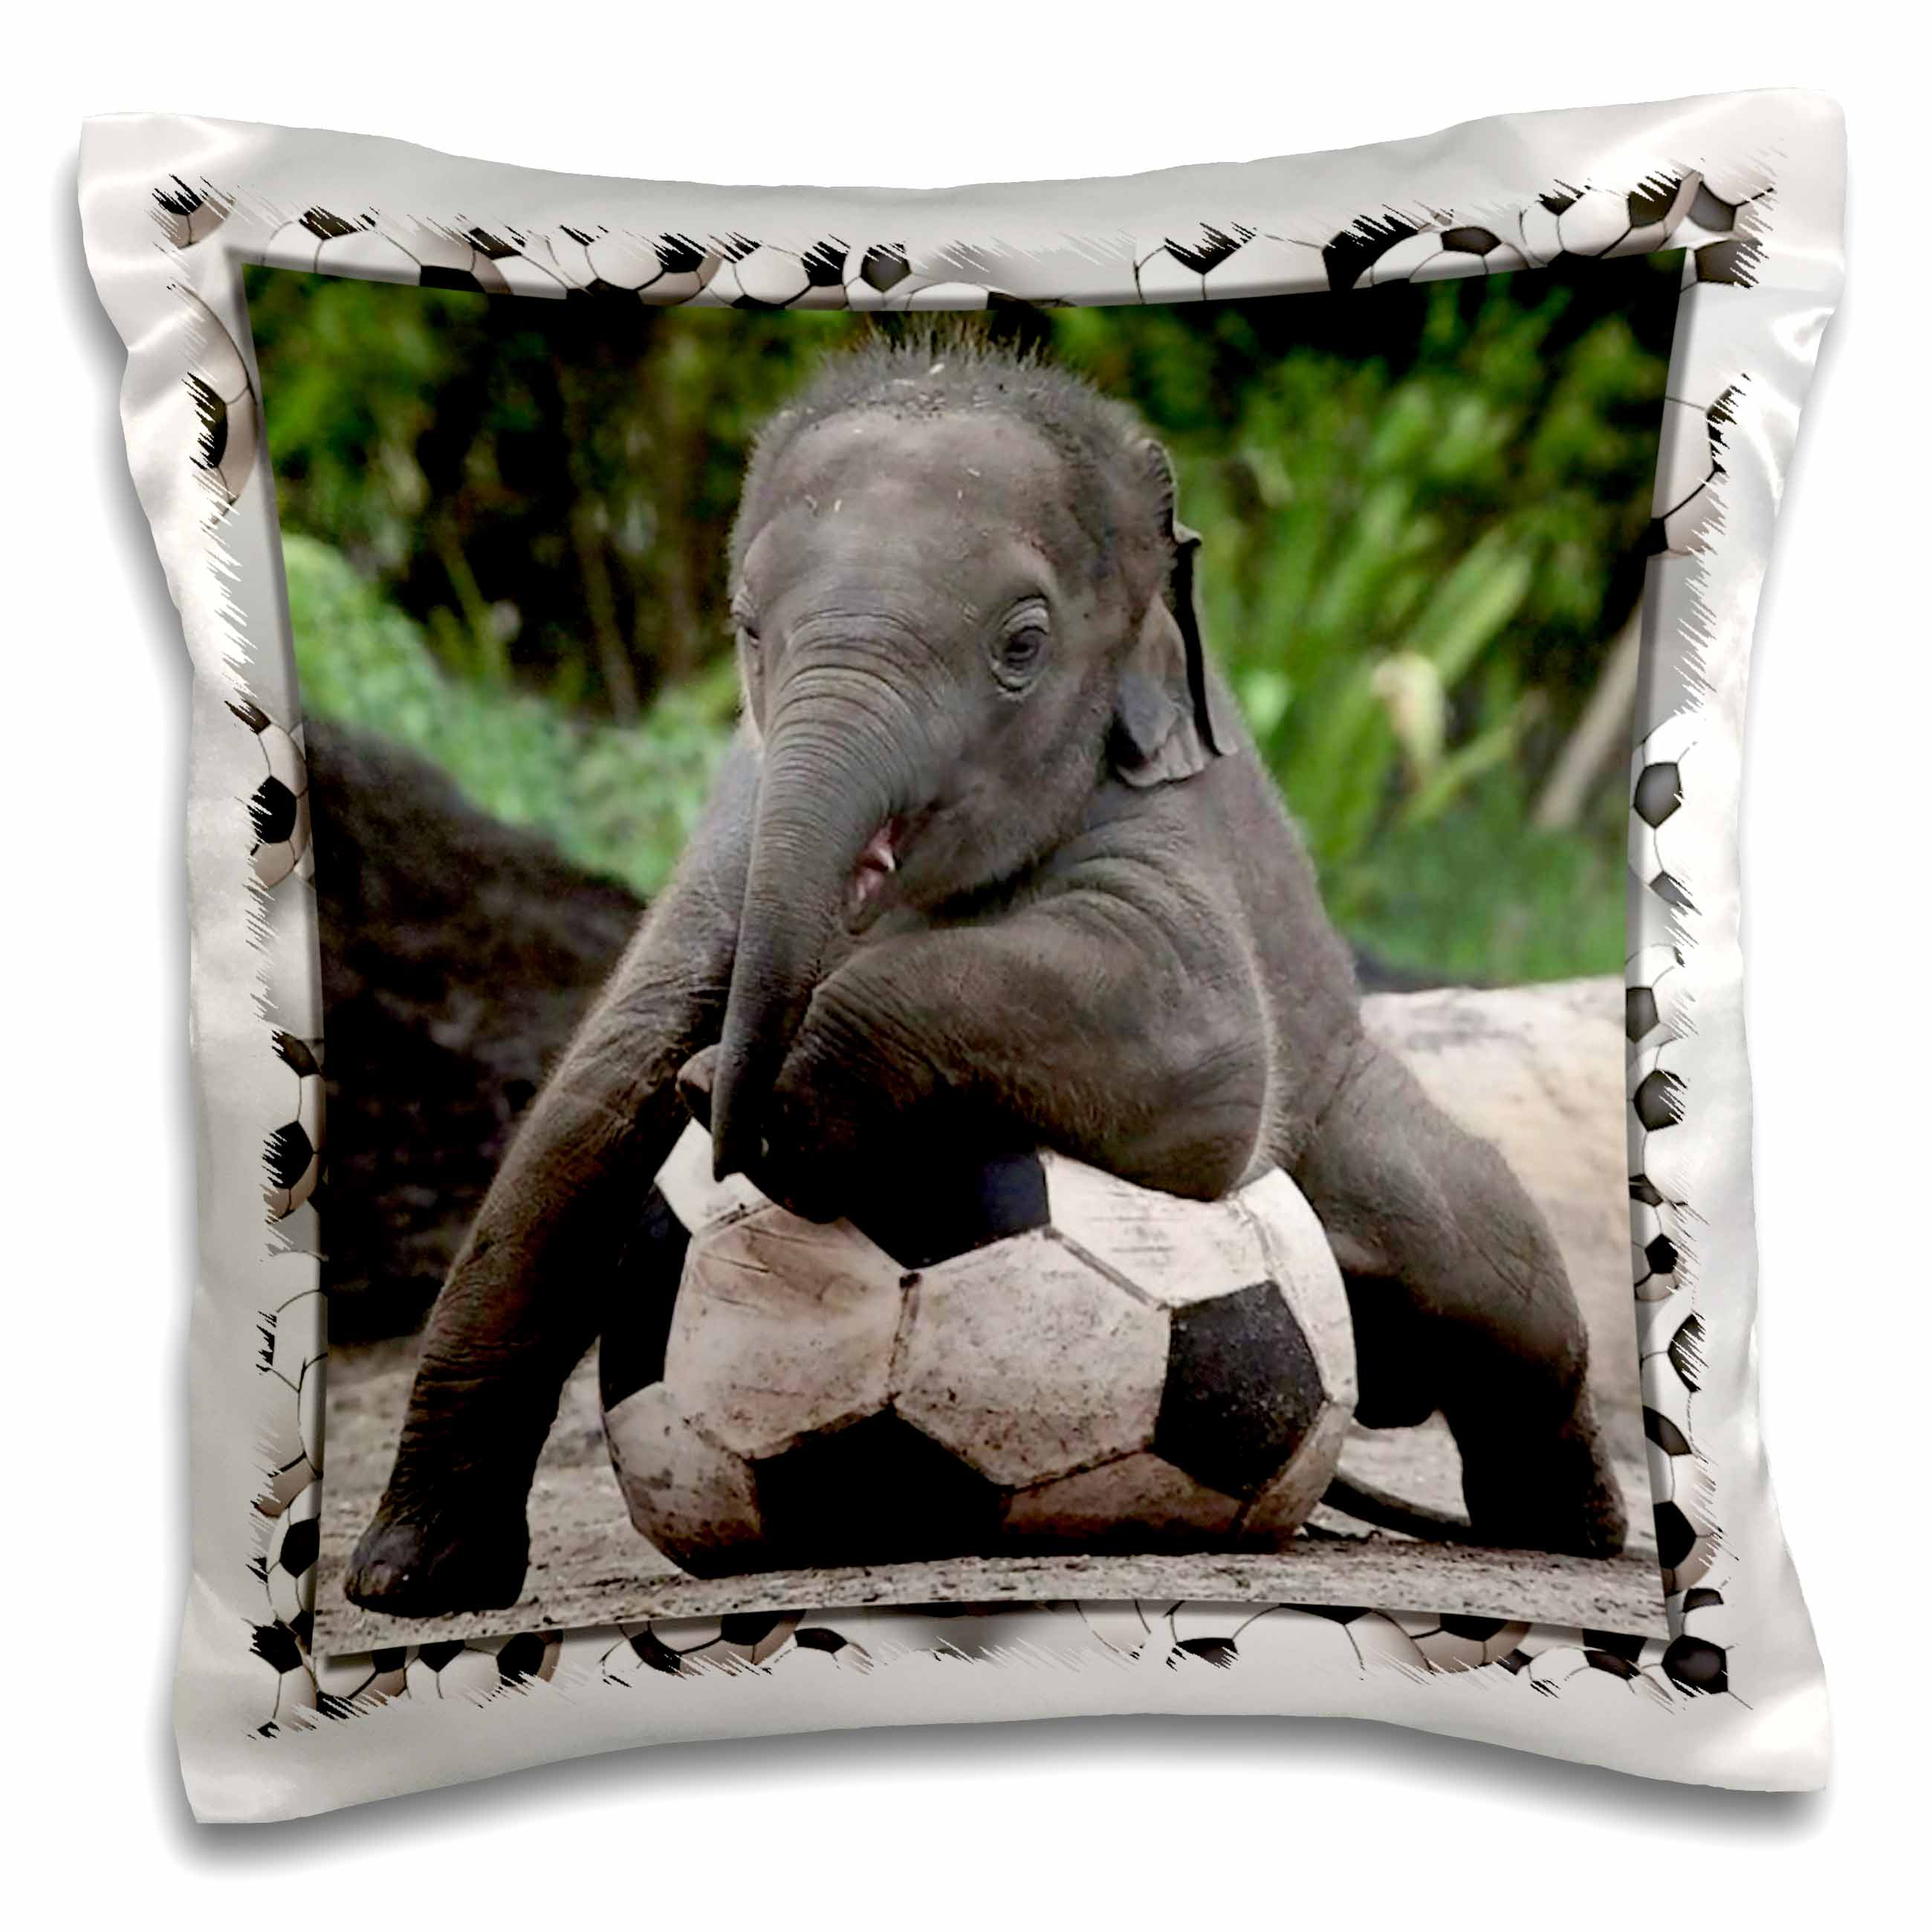 3dRose Elephant Soccer, Pillow Case, 16 by 16-inch